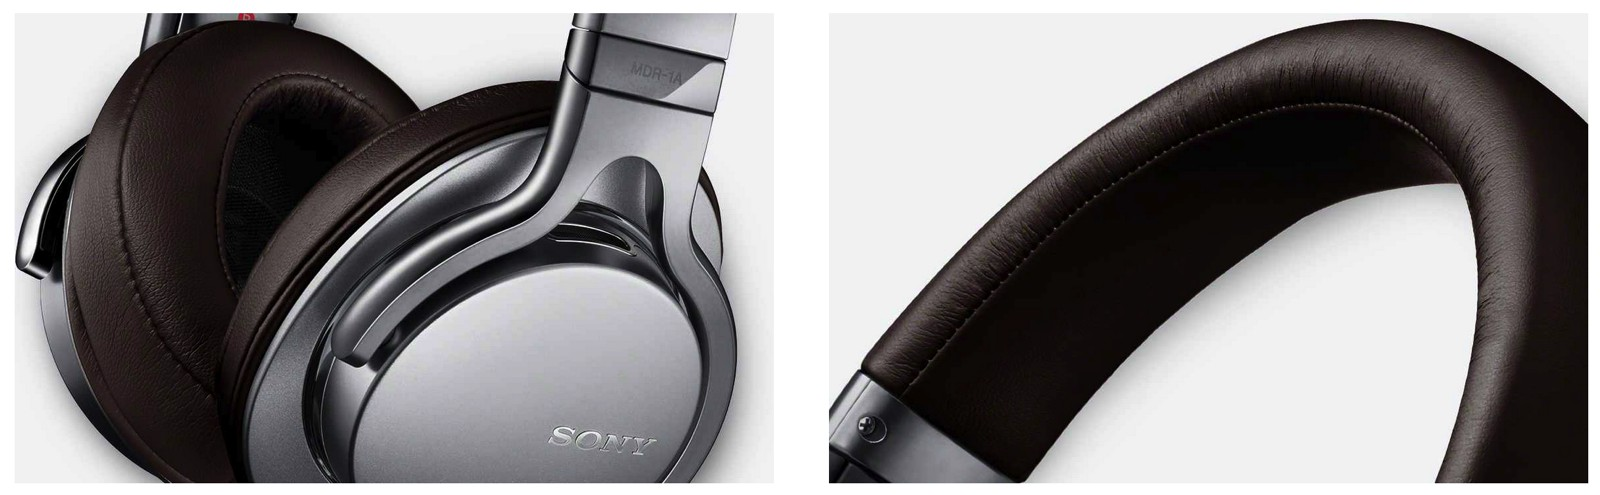 NWZ-A Series Hi-Resolution From Sony on Hand Luggage Only (2)